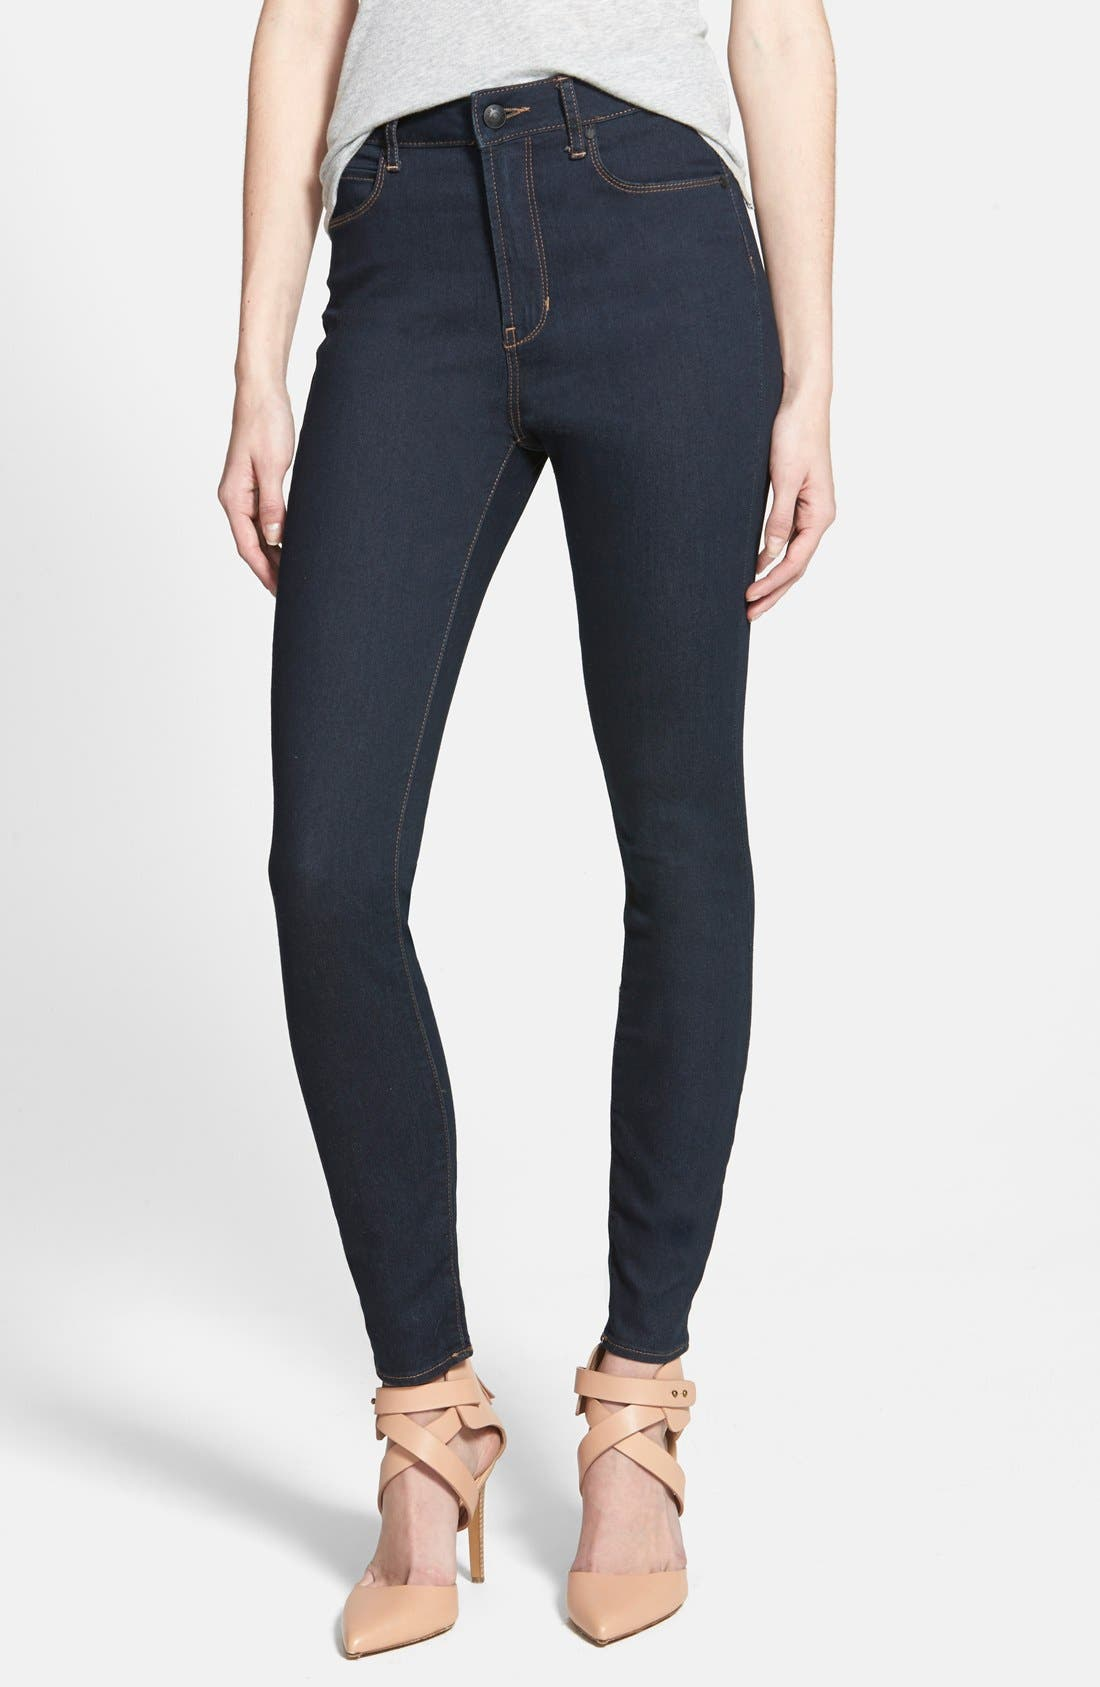 Alternate Image 1 Selected - Articles of Society 'Halley' High Waist Stretch Skinny Jeans